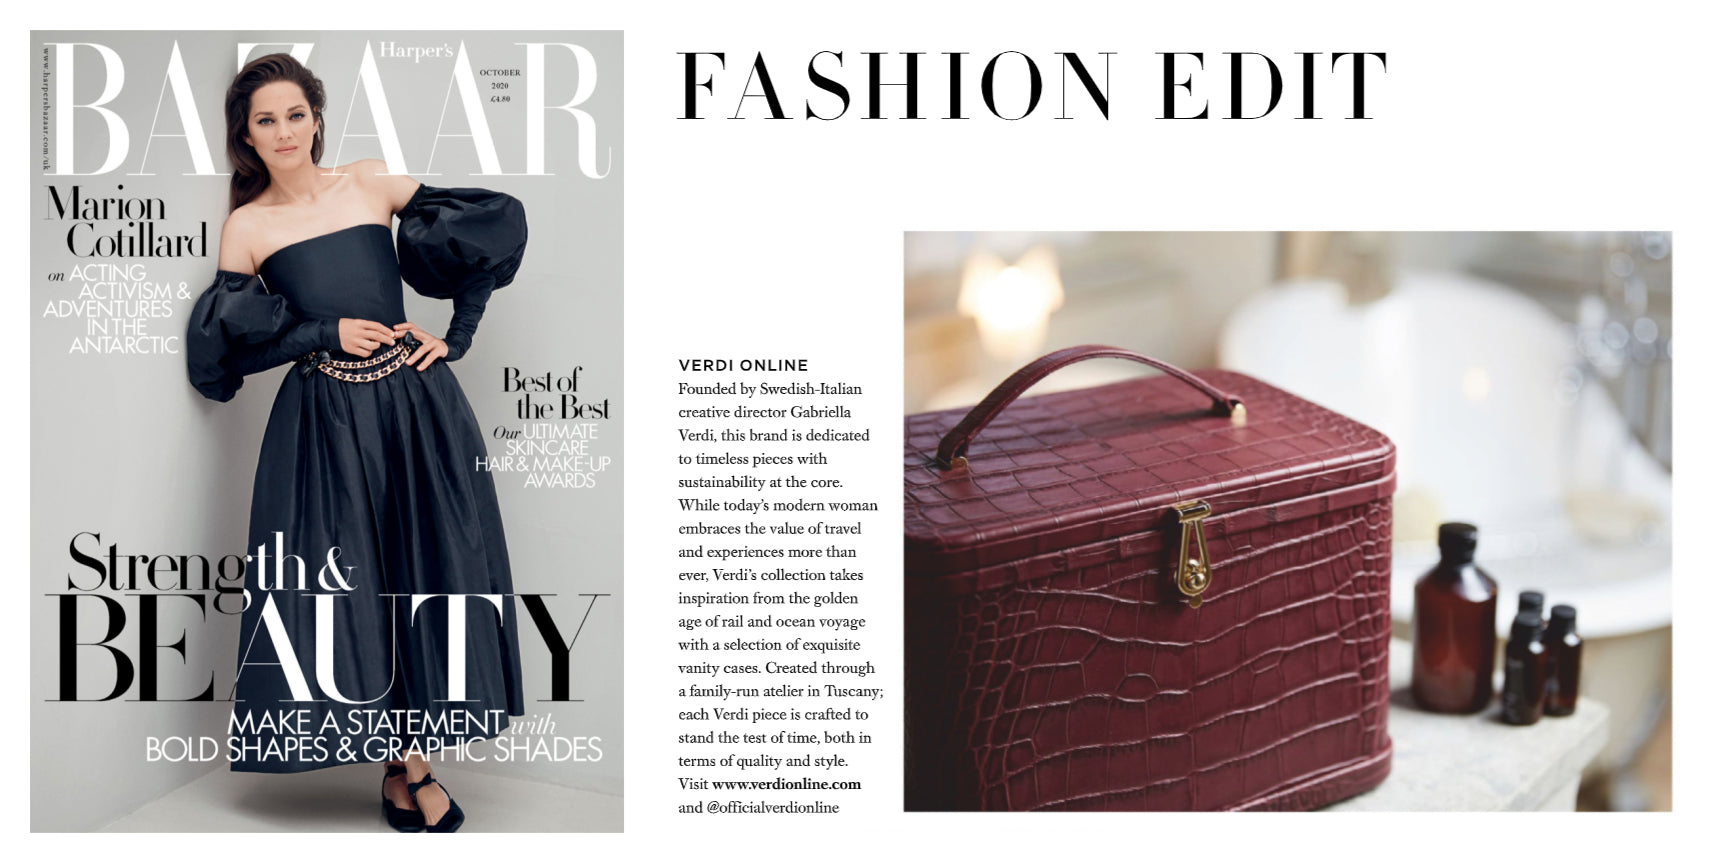 Atelier Verdi Wine Crocodile Vanity Case in Harper's Bazaar October 2020